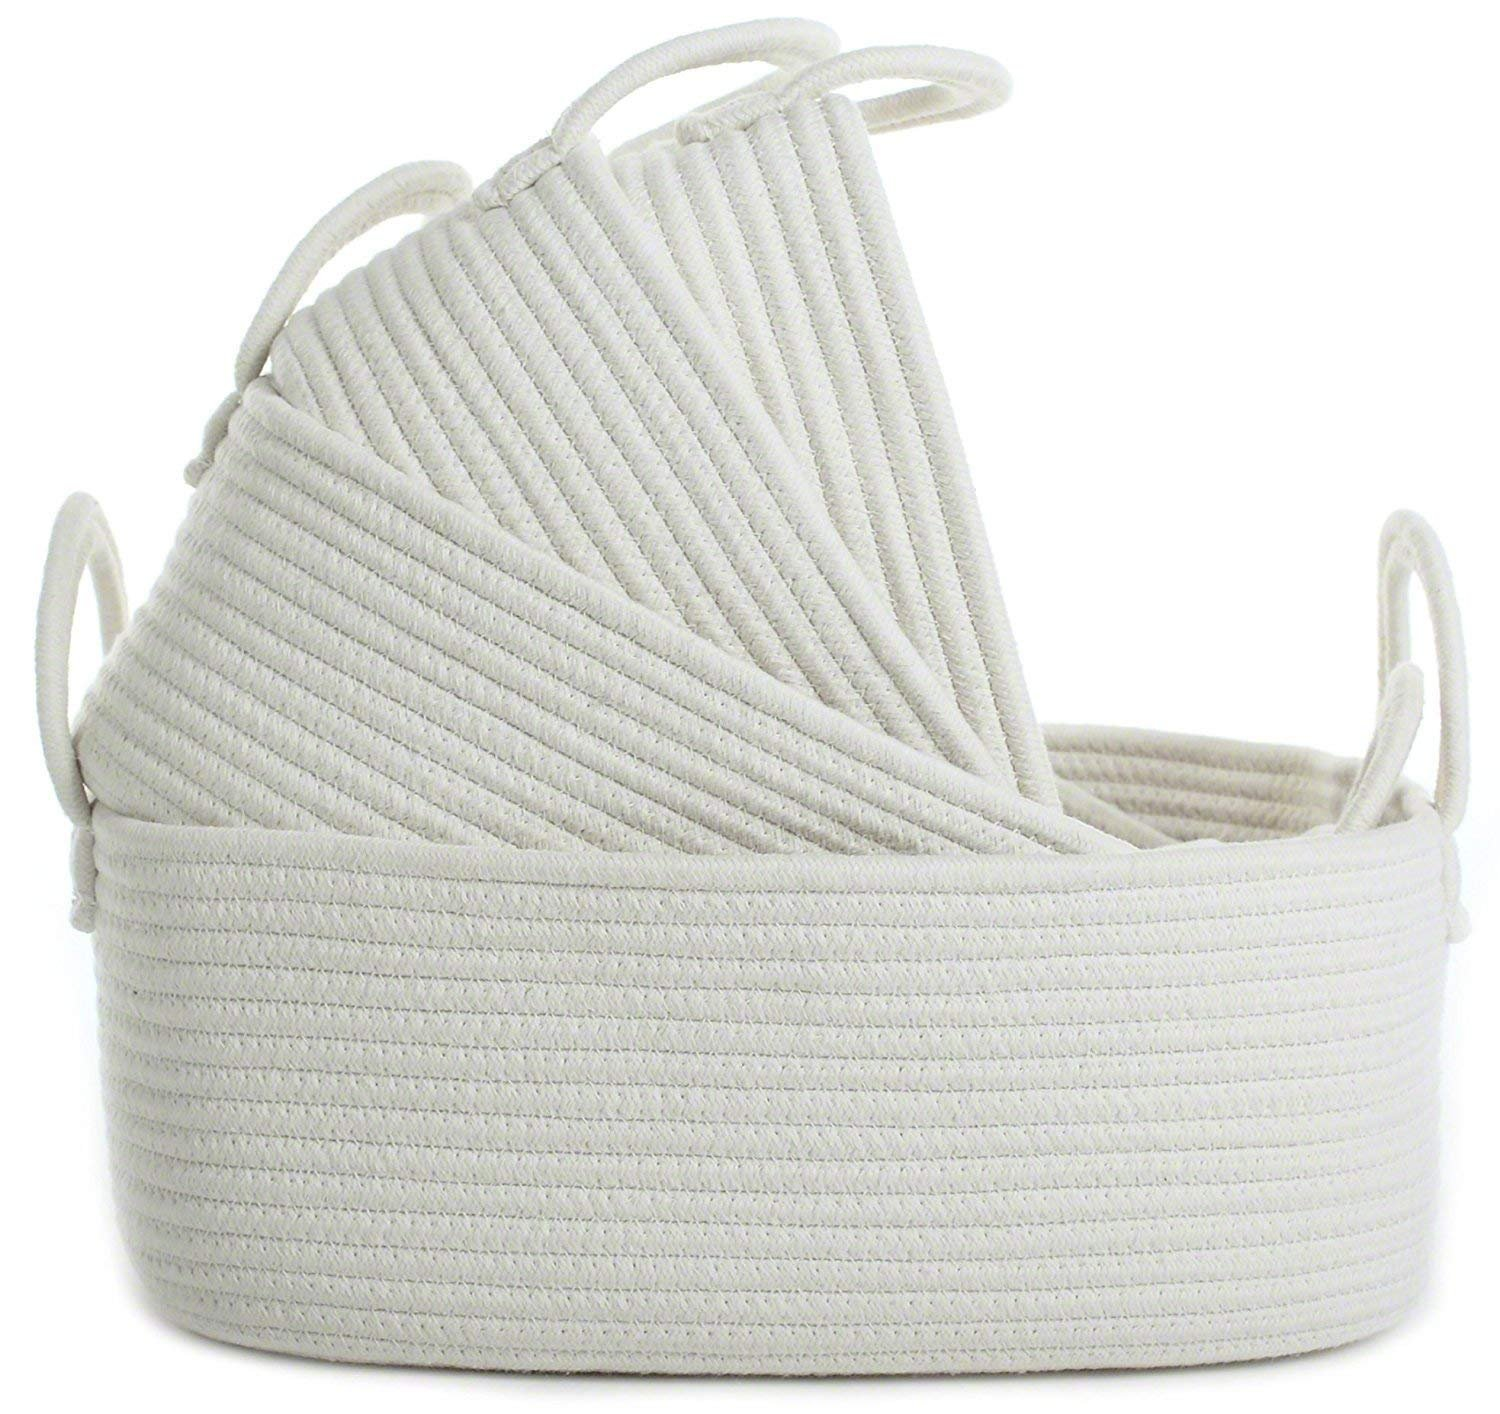 Storage Baskets Set of 4 - Woven Basket Cotton Rope Bin, Small White Basket Organizer for Baby Nursery Laundry Kid's Toy by LA JOLIE MUSE